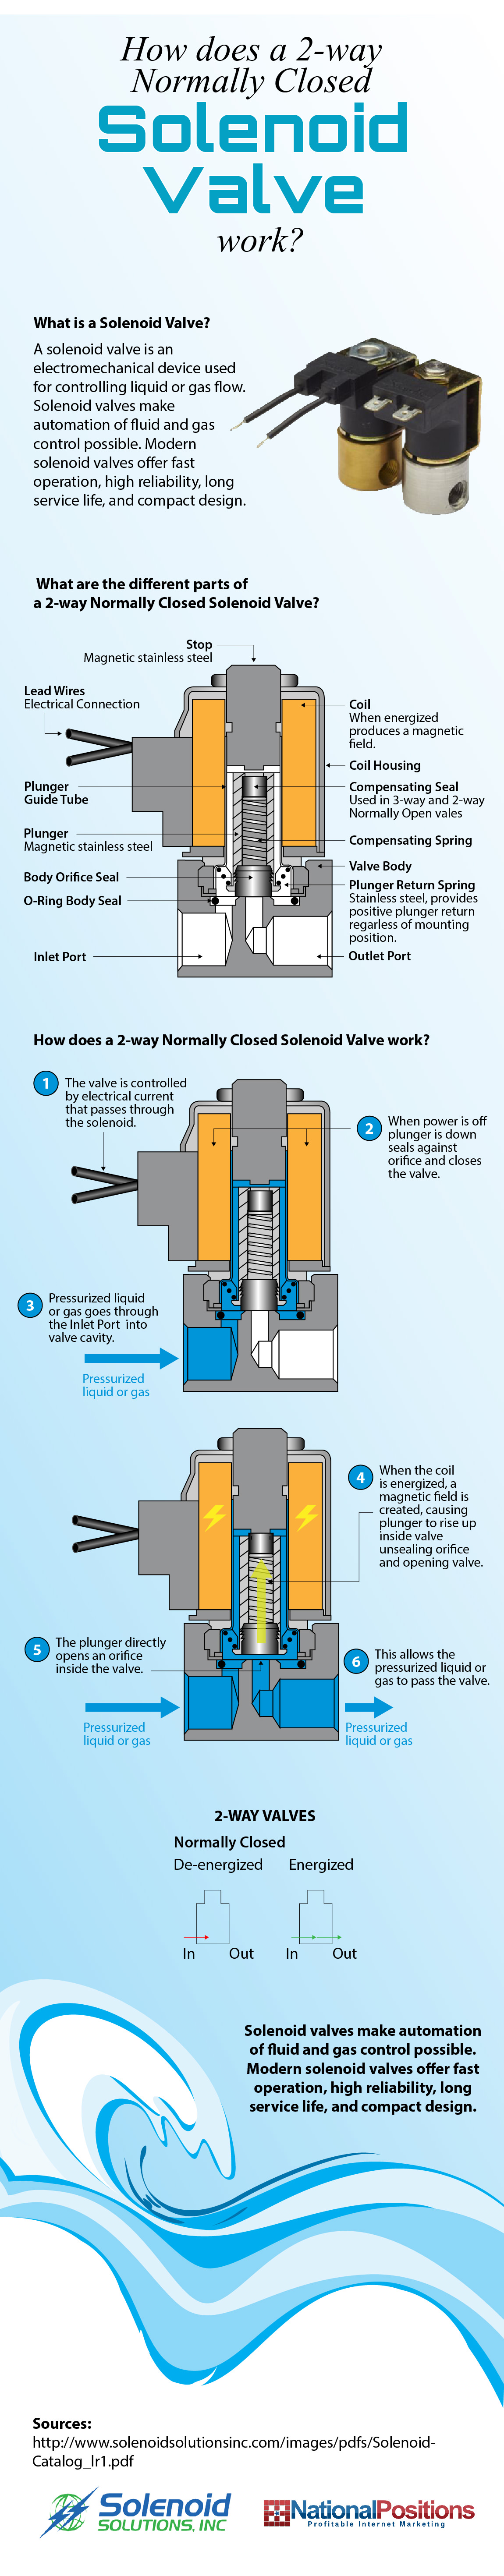 How A 2-Way Normally Closed Solenoid Valve Works | Solenoid ...  Port Solenoid Wiring Diagram Volt on 12 volt battery bank wiring diagram, universal relay wiring diagram, 98 f150 radio wiring diagram, 12 volt cigarette socket wiring diagram, 24 volt fan relay diagram, 12 volt boat wiring diagram, 24v trolling motor wiring diagram, 24 volt solenoid valve, 12 volt parallel battery wiring diagram, series parallel switch wiring diagram, 24 volt starting system diagram, 24 volt starter diagram, 24 volt starter relay, 24 volt battery diagram, 24 volt solenoids 7,